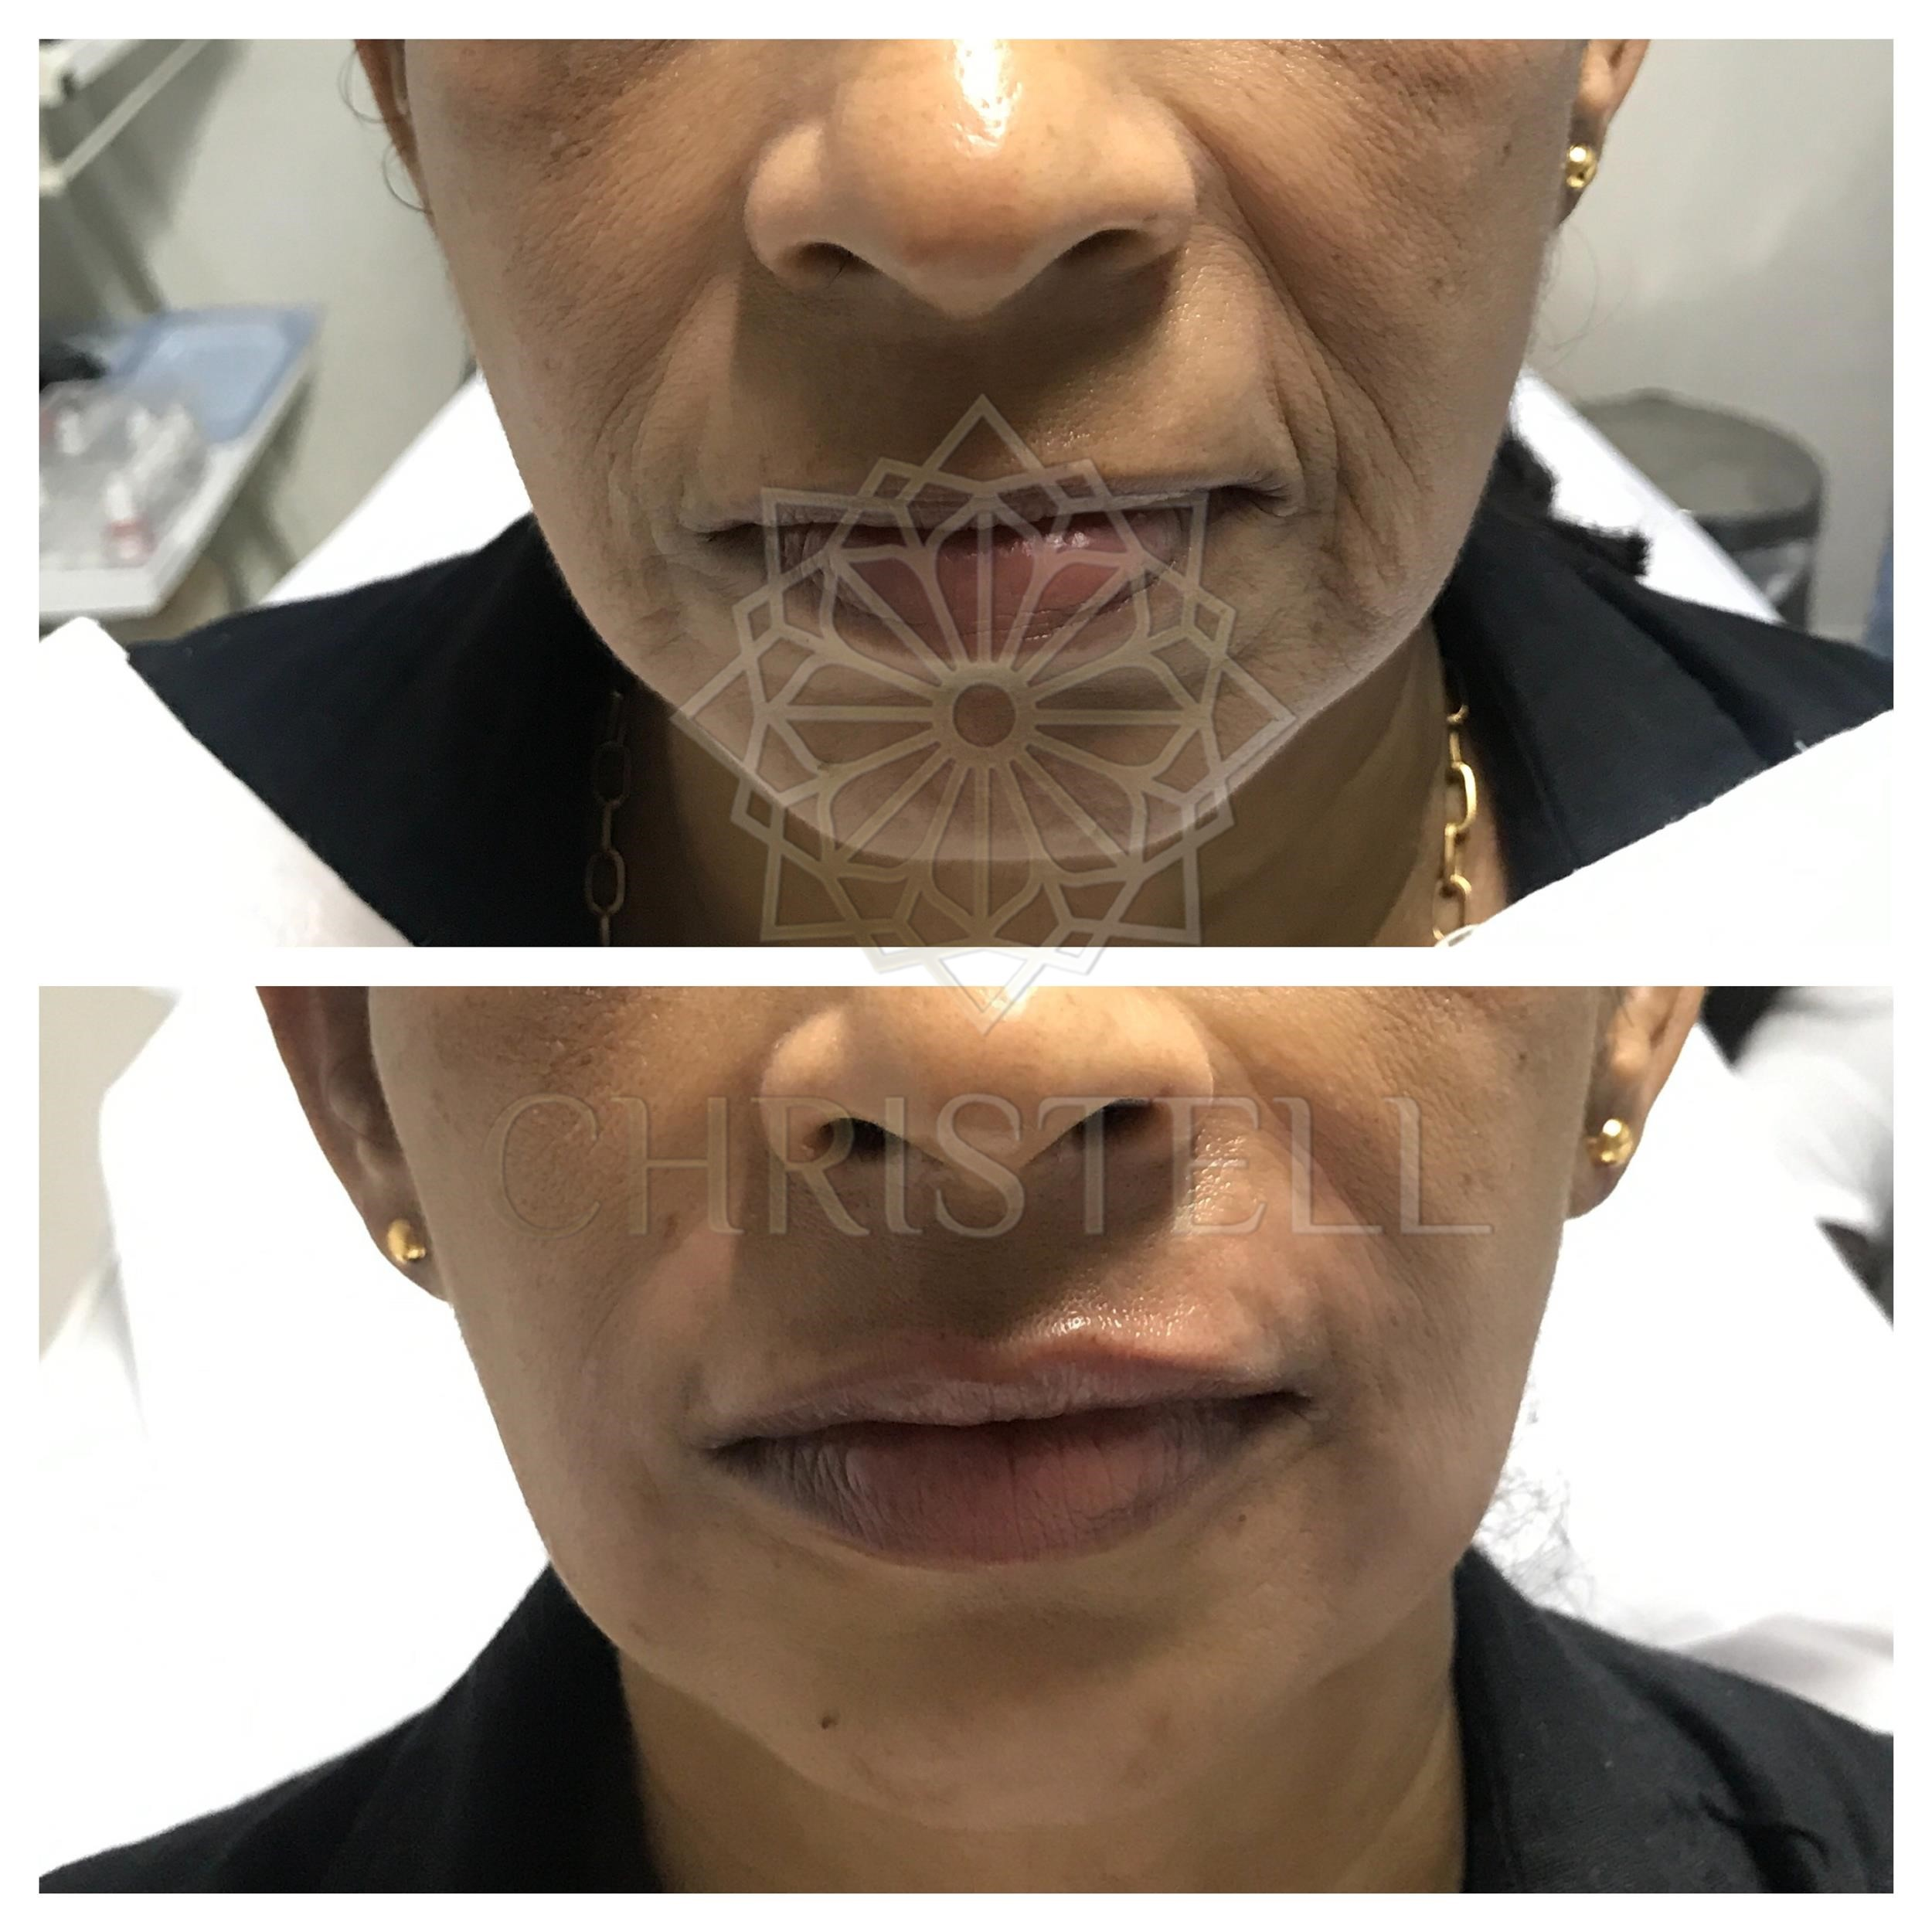 IMG_1905_wm-1 Dermal Fillers (Cheeks,Eyes,Lips, Face)